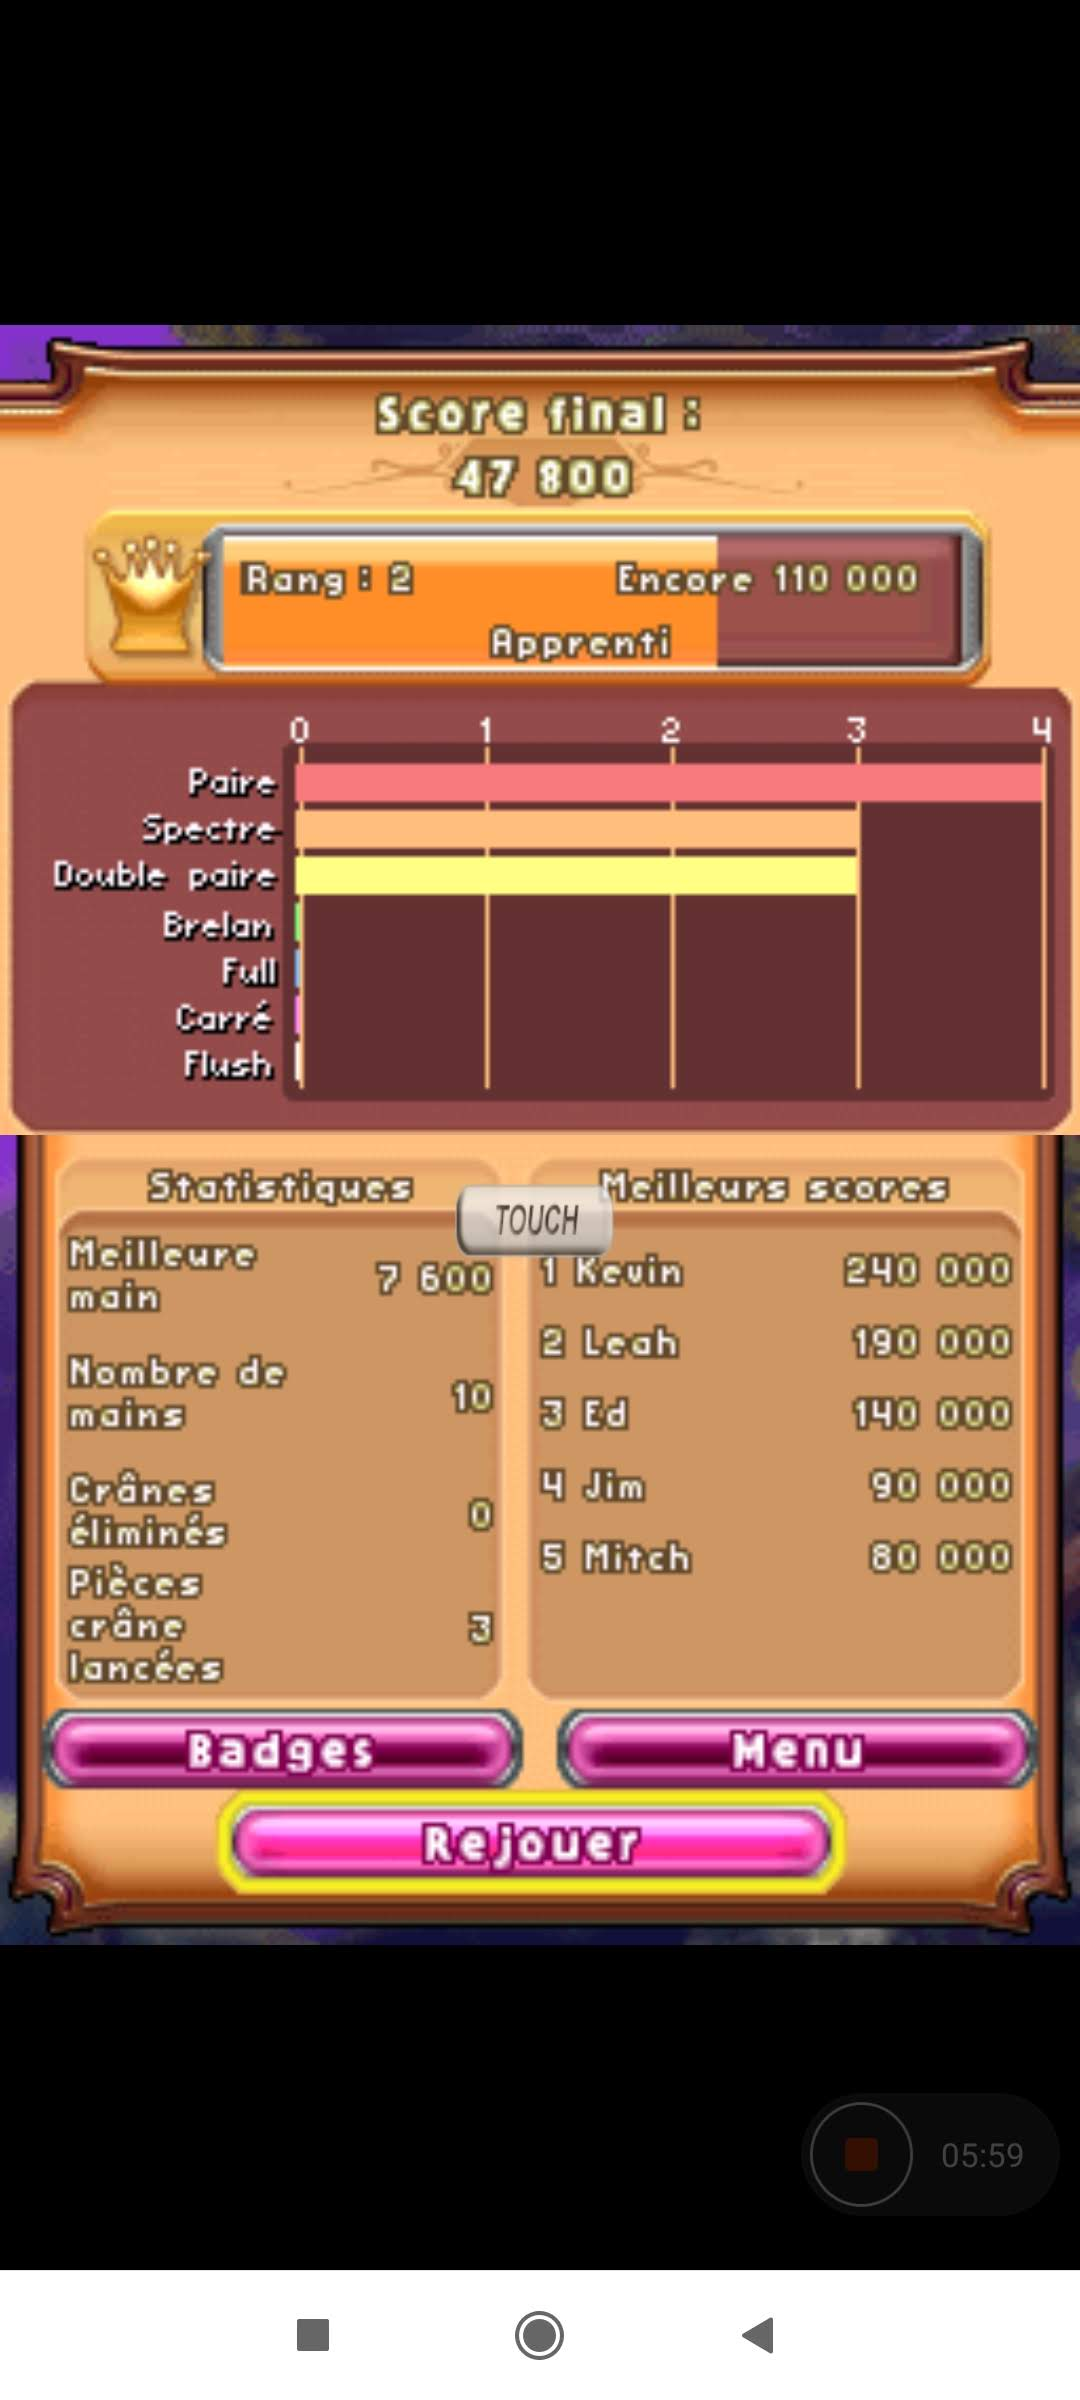 Larquey: Bejeweled 3: Poker [Number of Full House] (Nintendo DS Emulated) 0 points on 2020-09-26 03:36:59